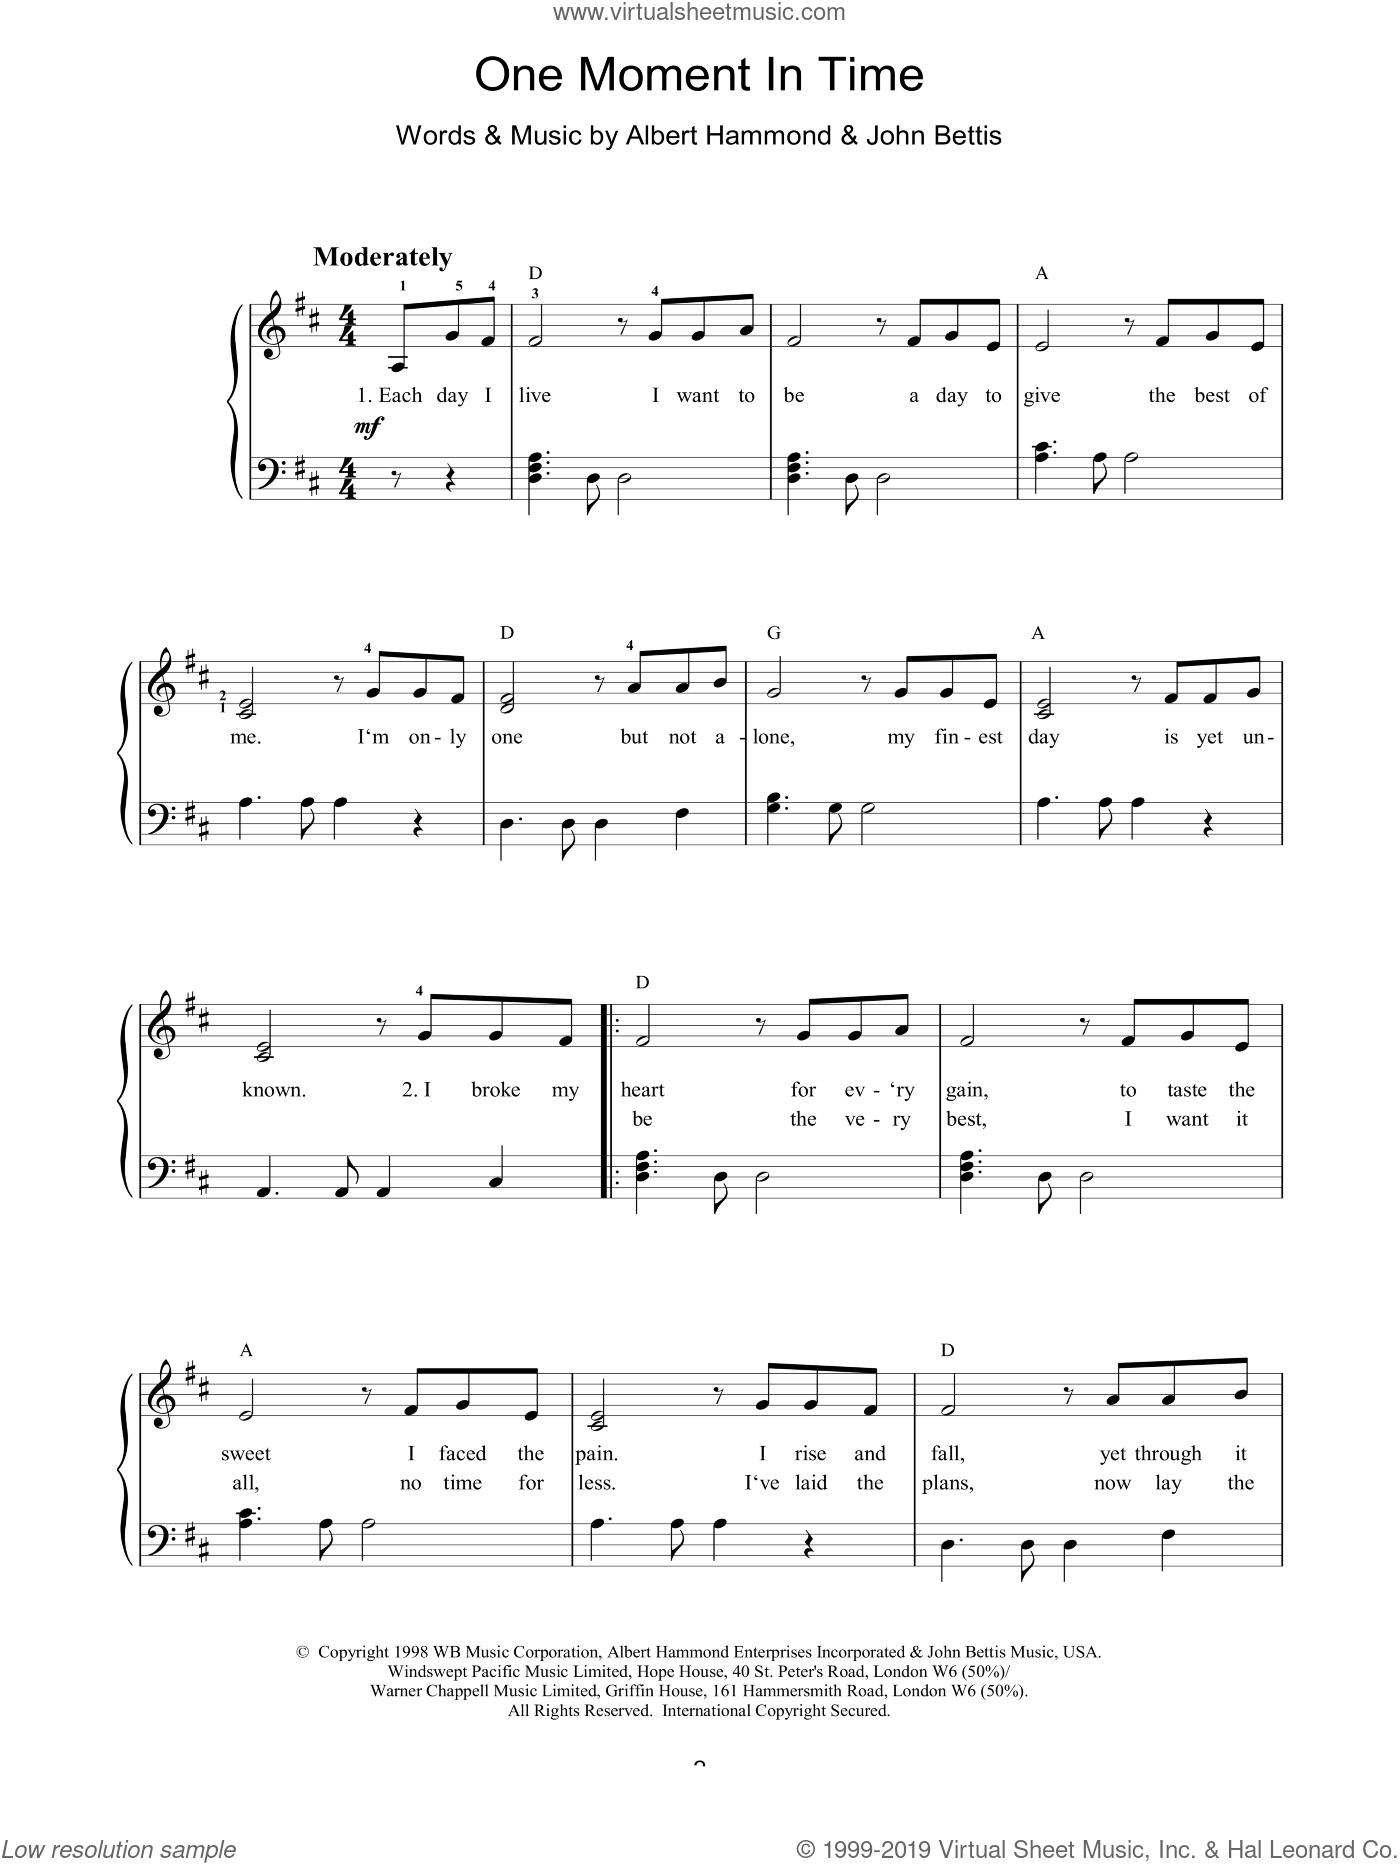 One Moment In Time sheet music for piano solo (chords) by John Bettis